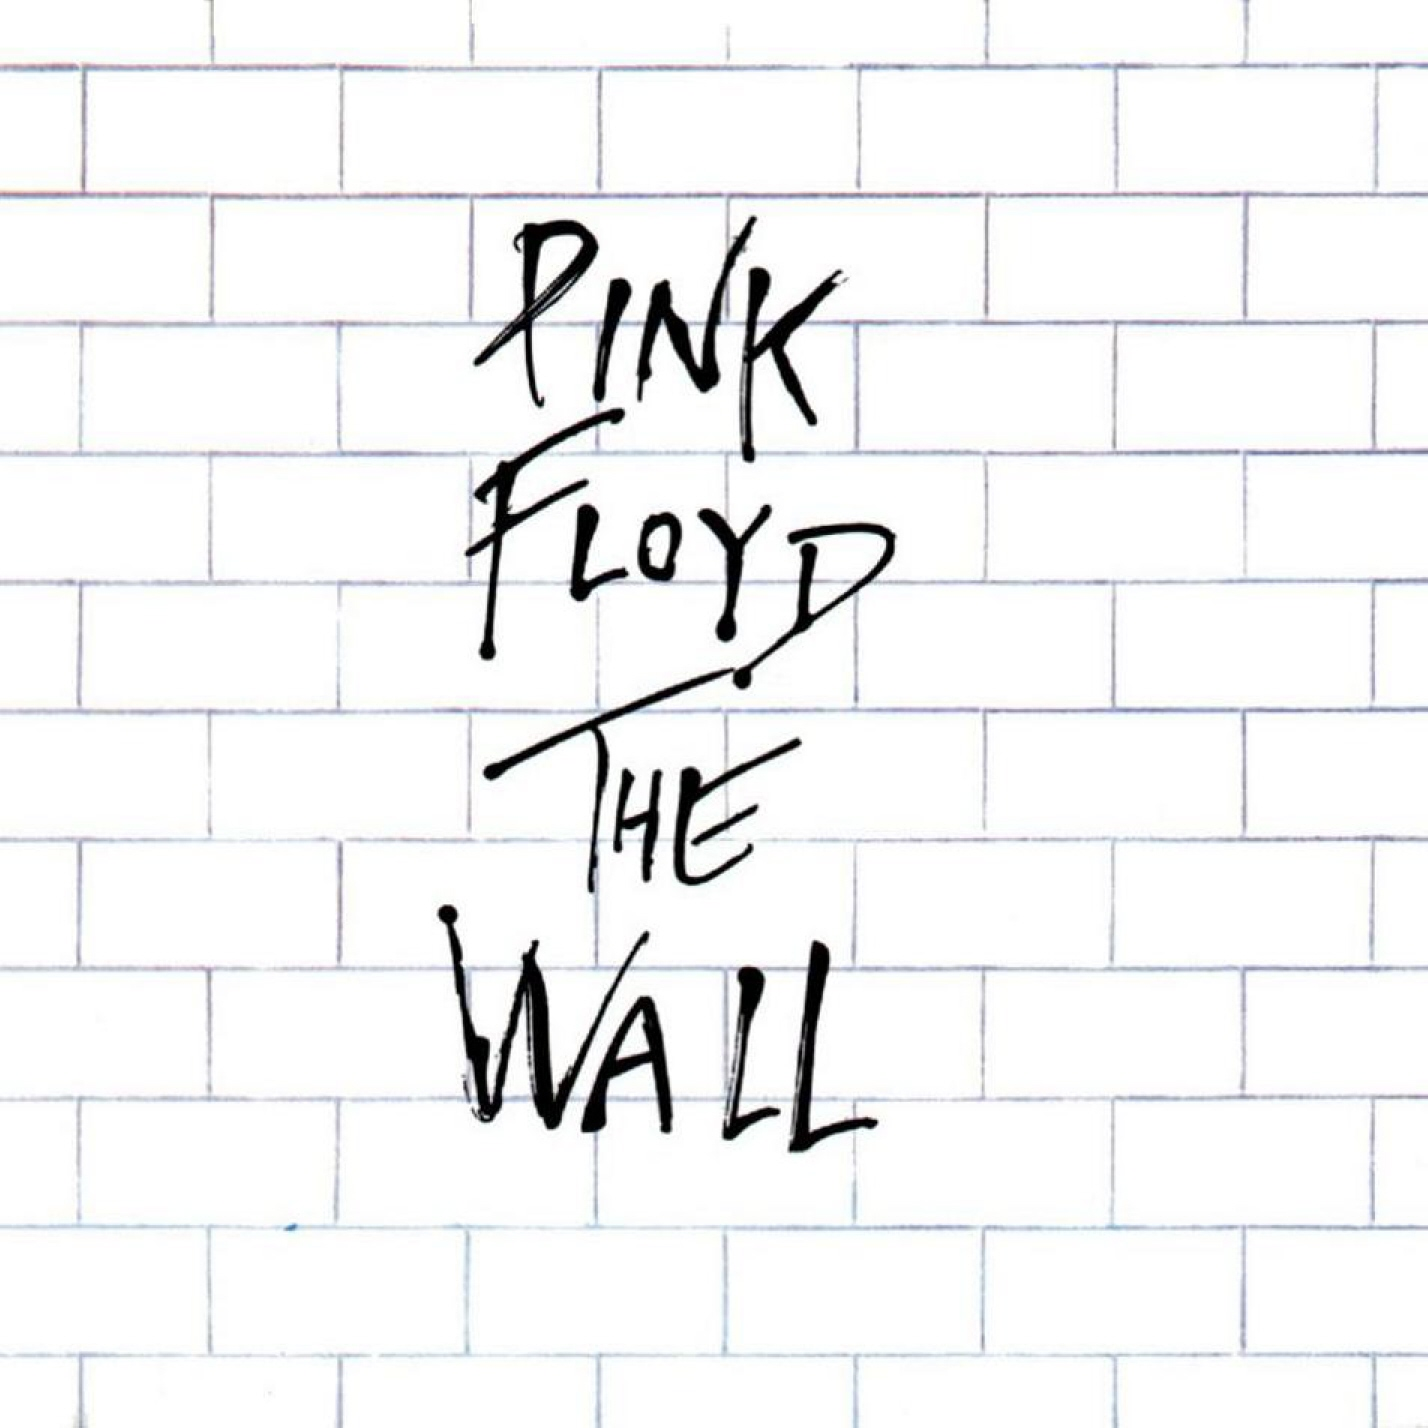 Another Brick in the Wall (Part 2) – Pink Floyd